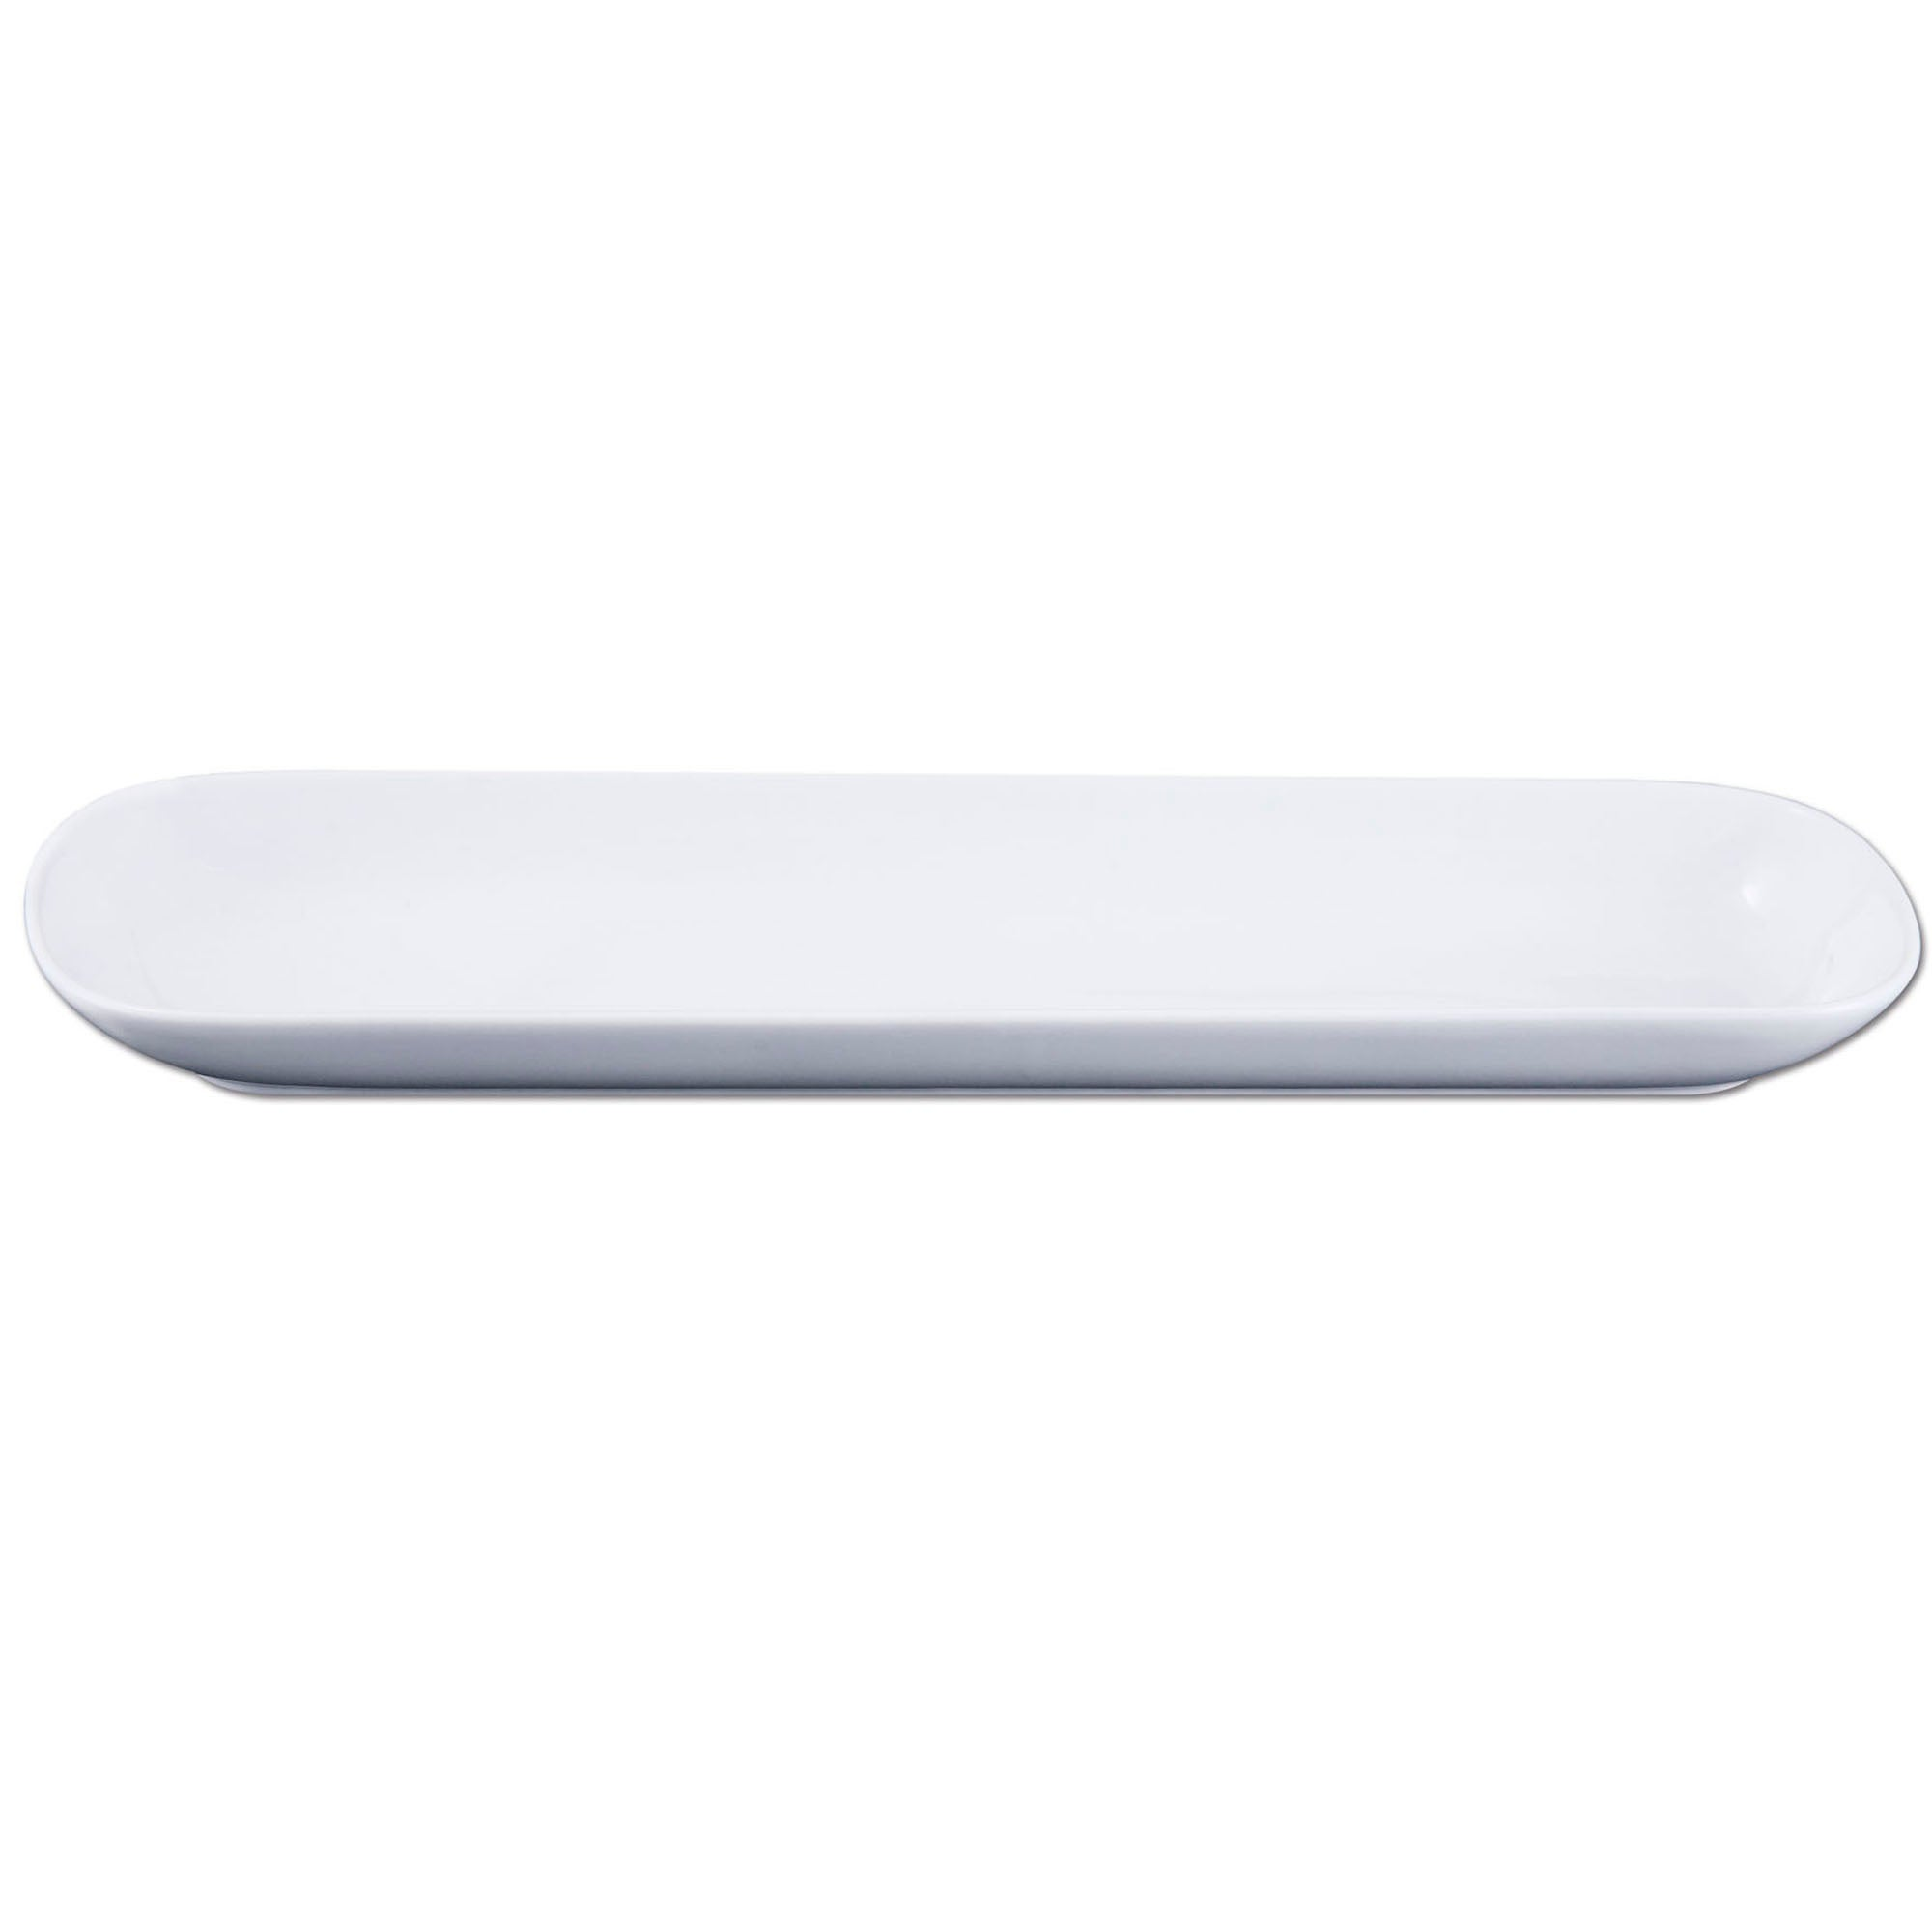 Purity Collection Oblong Serving Dish